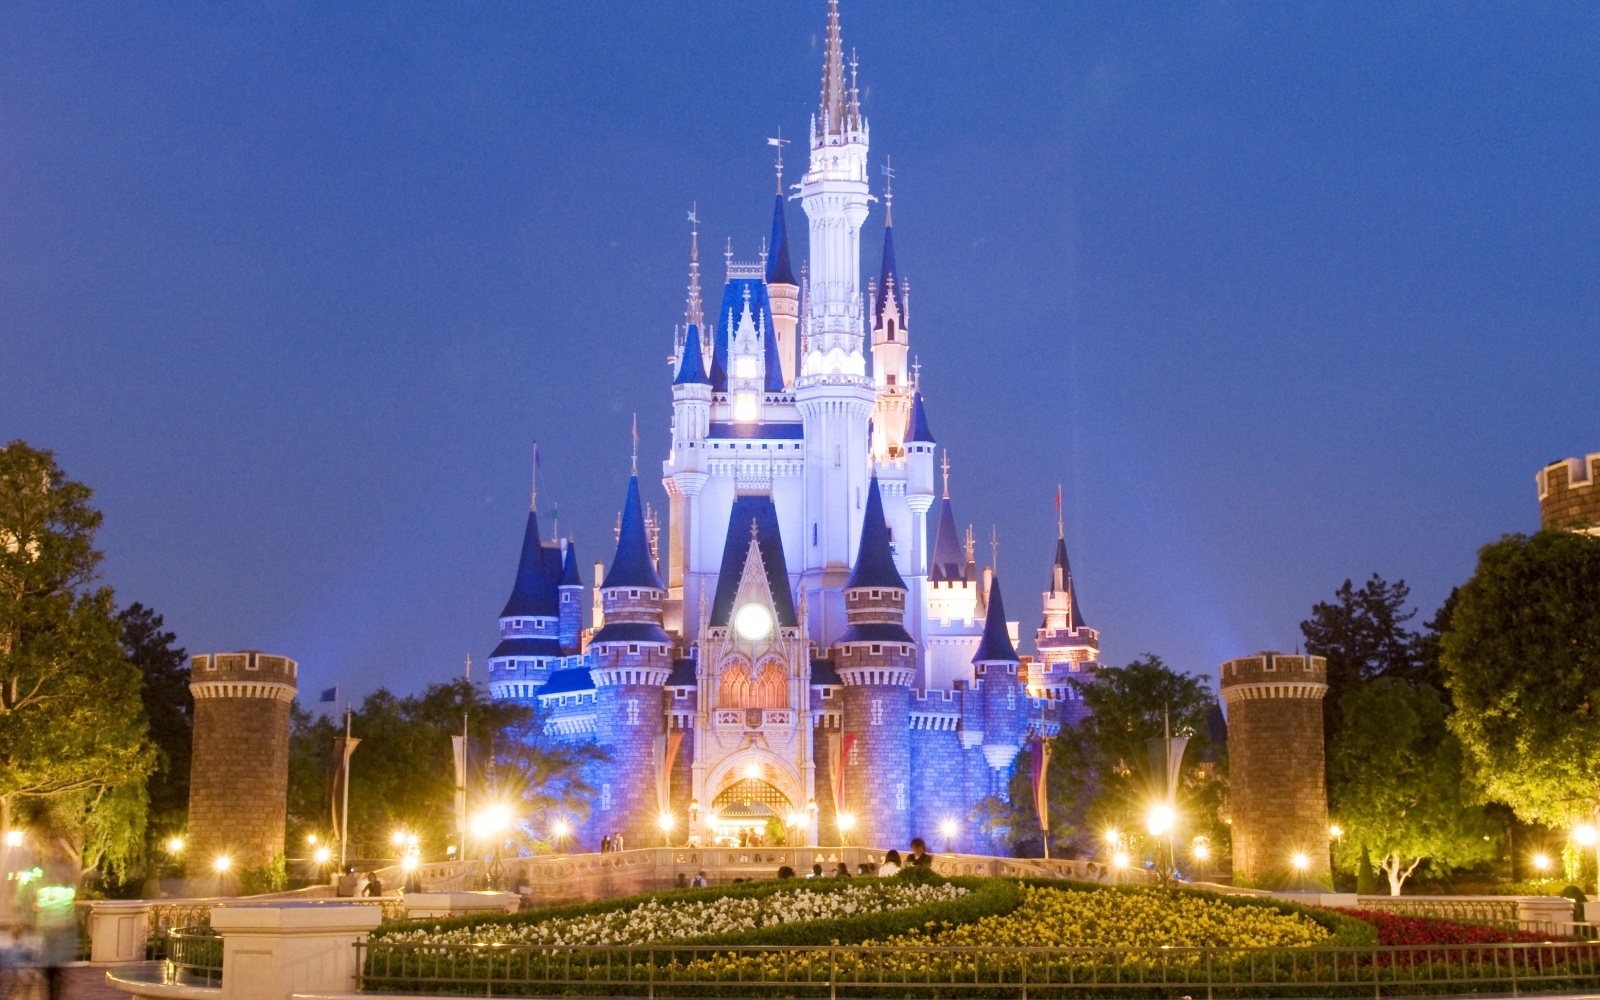 The most popular attraction in the world 70